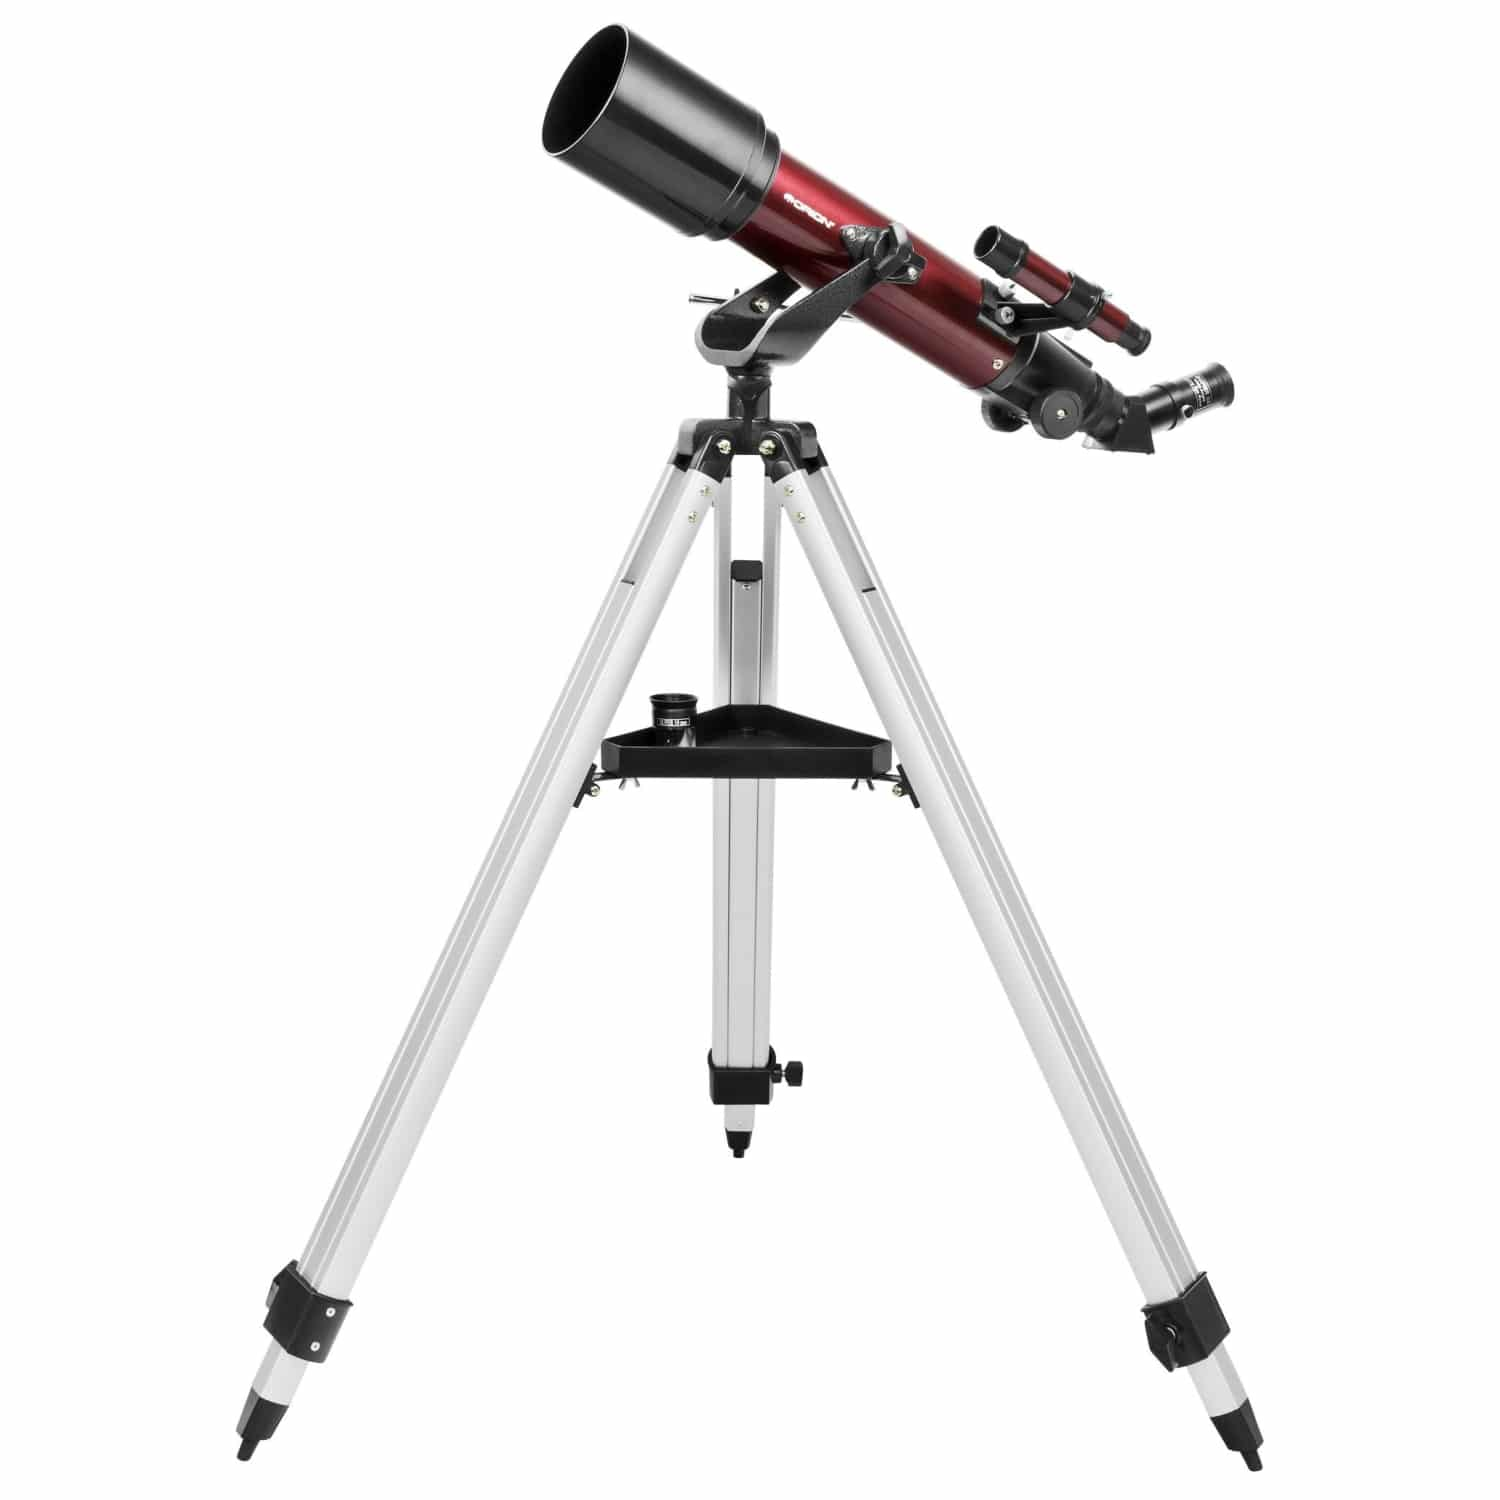 9 Best Portable Telescopes (May 2020) — Reviews & Buying Guide